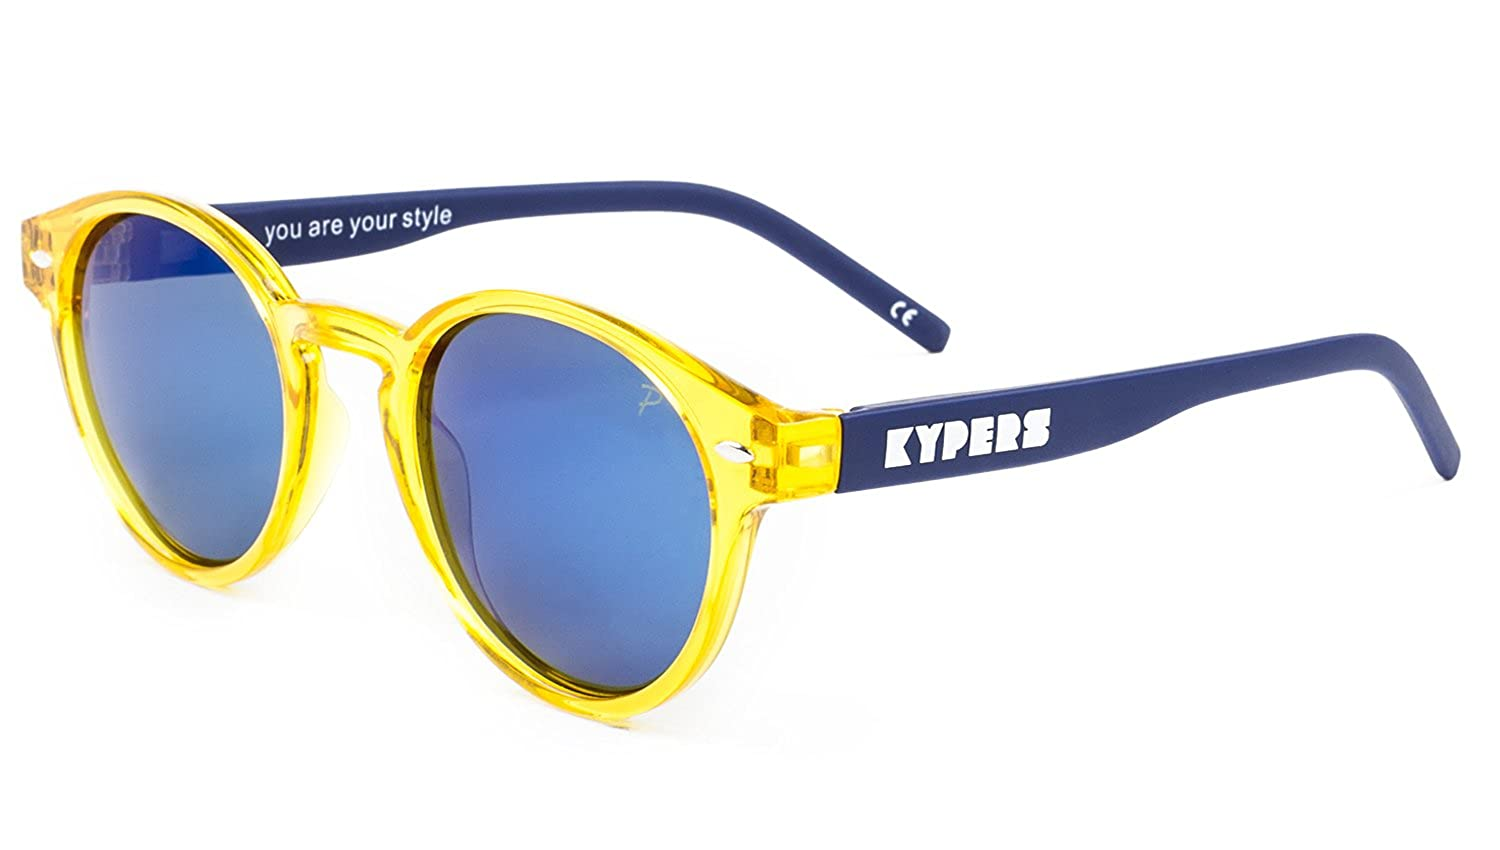 KYPERS Manhattan, Gafas de Sol Unisex, Clear Yellow-Ice Blue Mirror, 49: Amazon.es: Ropa y accesorios